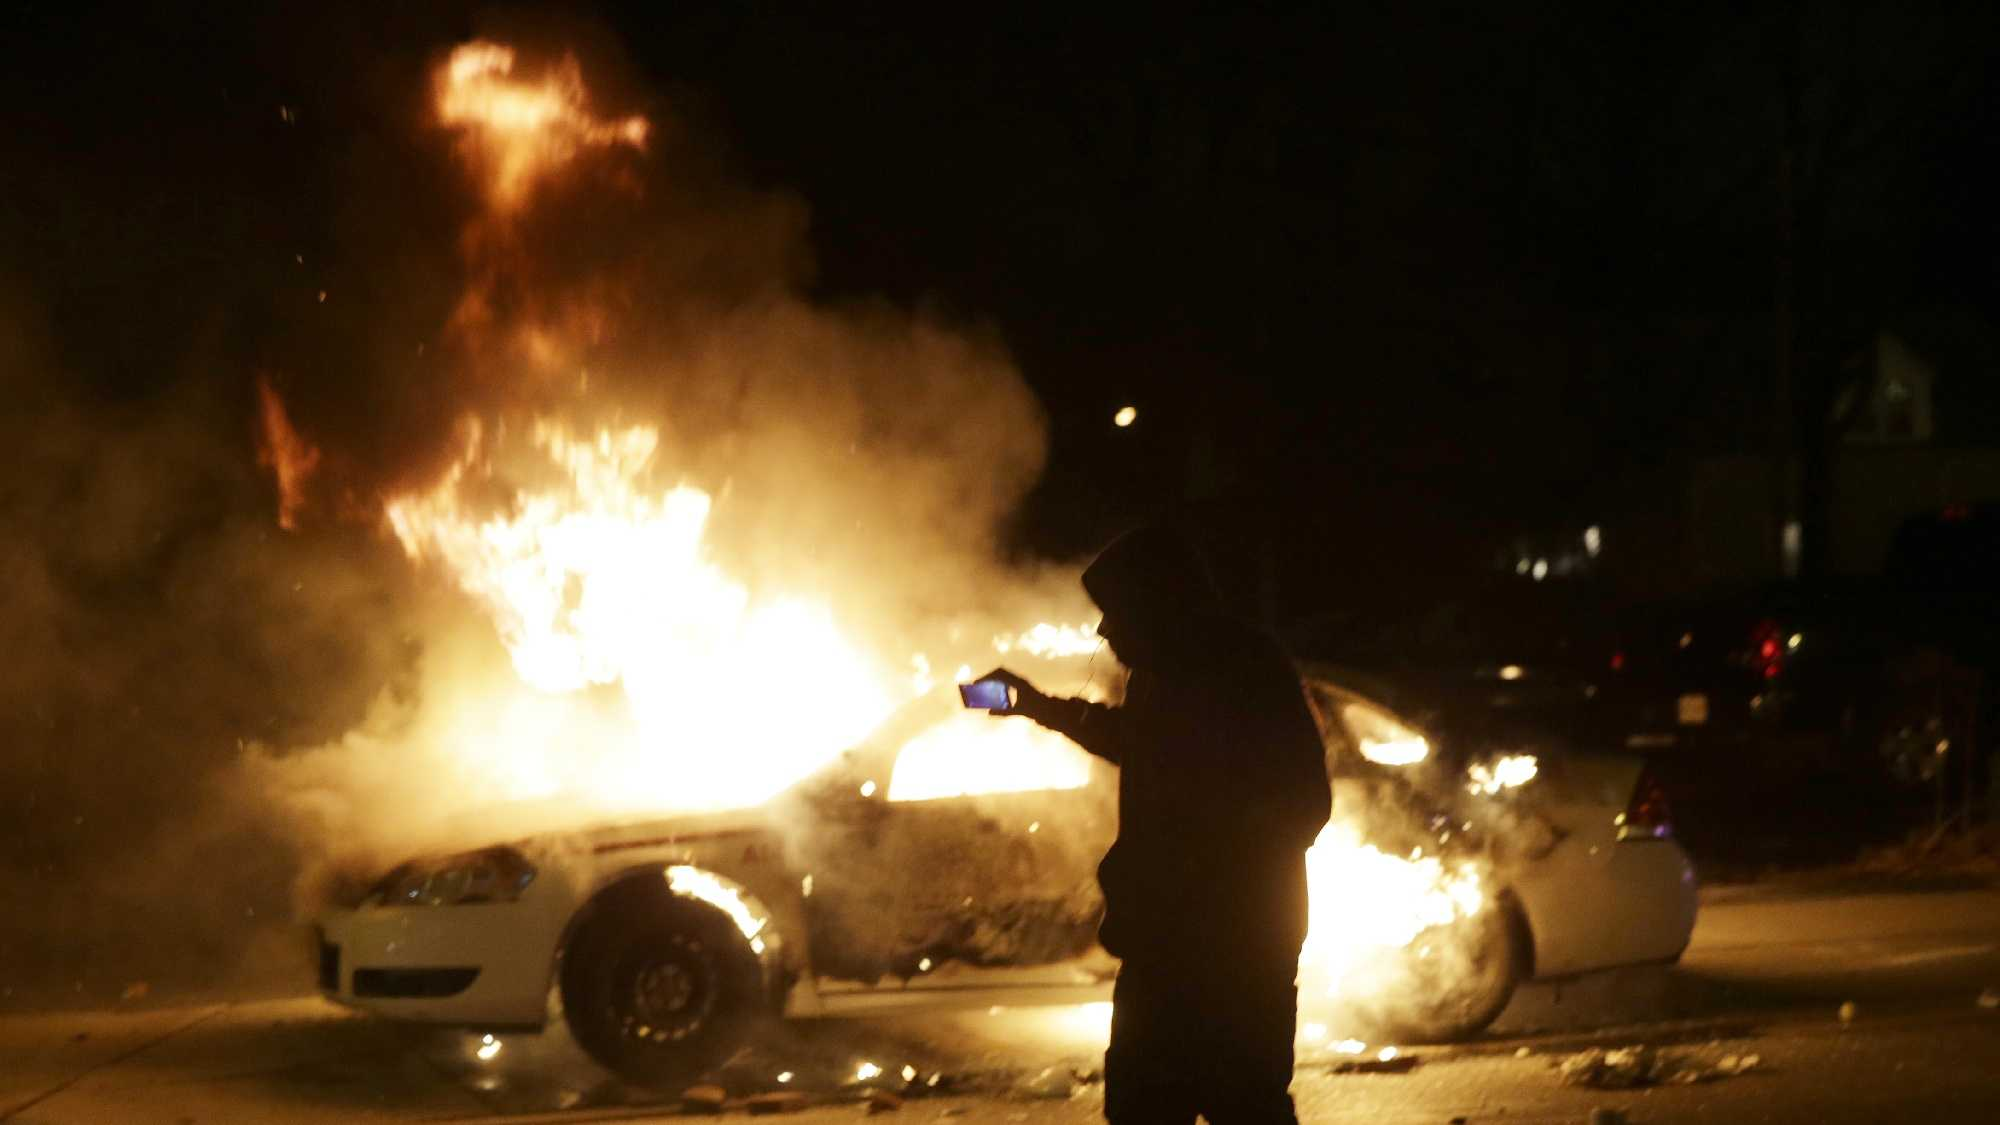 A man runs from a police car that is set on fire after a group of protesters vandalize the vehicle after the announcement of the grand jury decision Monday, Nov. 24, 2014, in Ferguson, Mo.